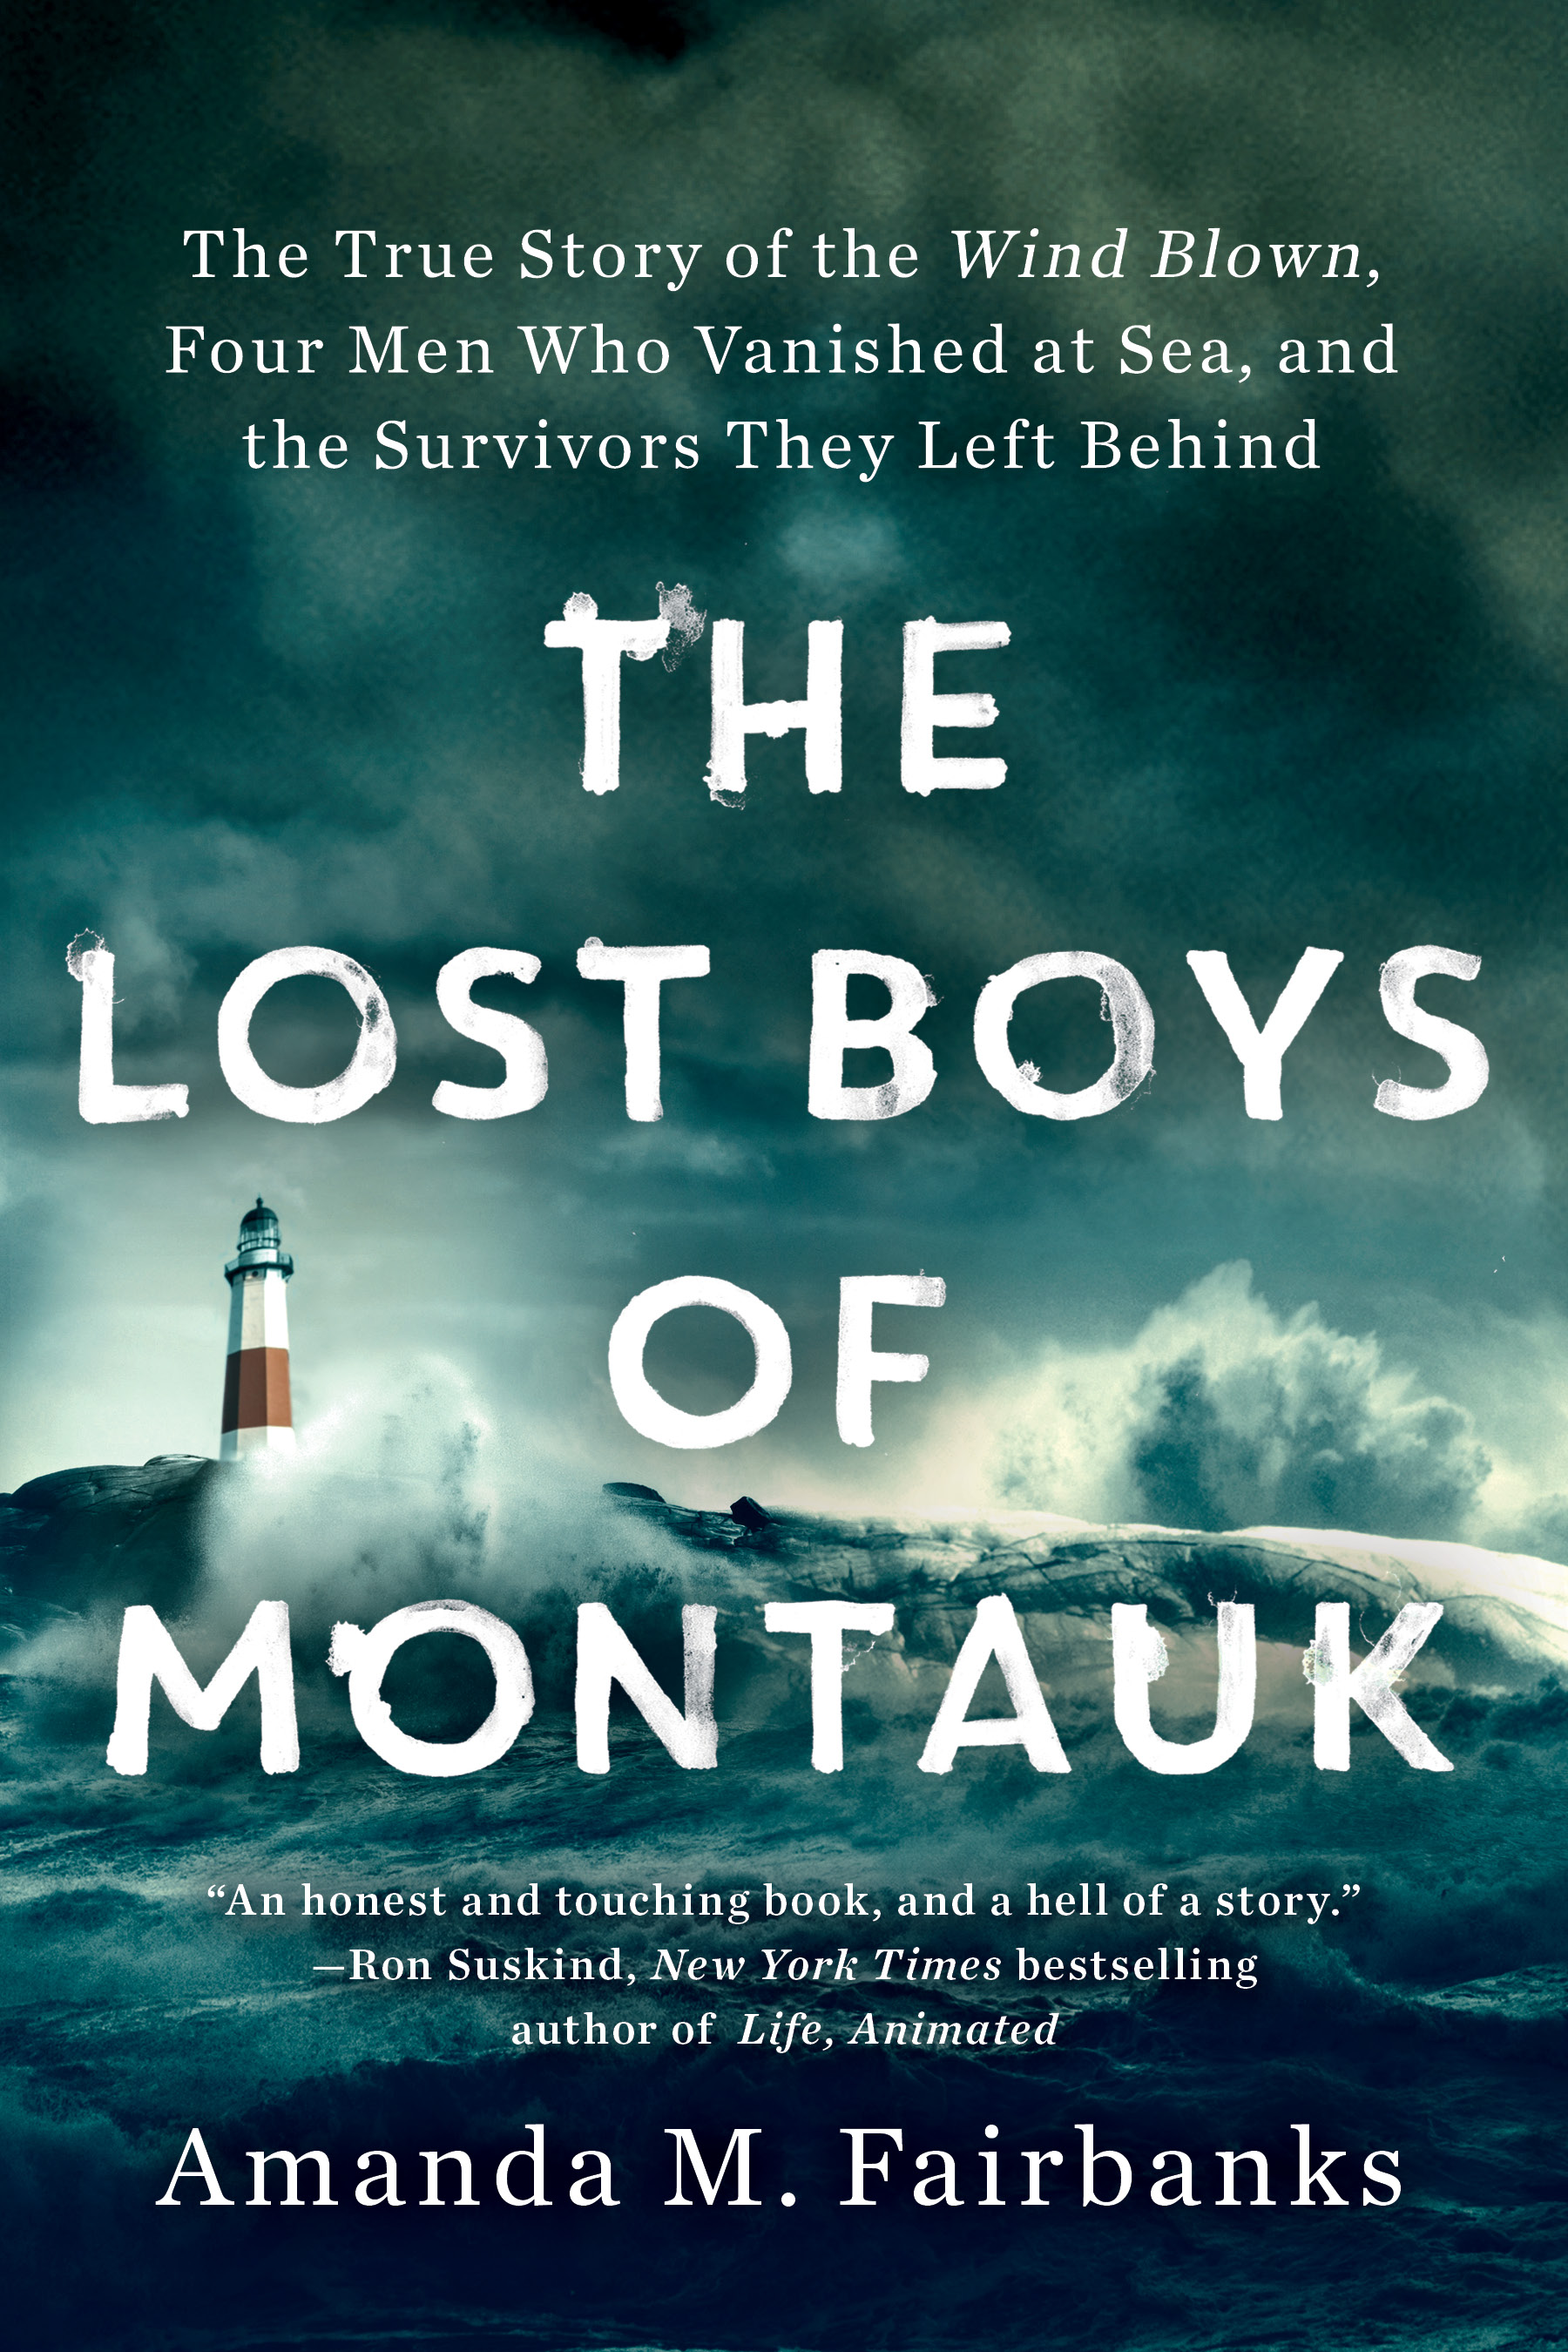 The Lost Boys of Montauk The True Story of the Wind Blown, Four Men Who Vanished at Sea, and the Survivors They Left Behind